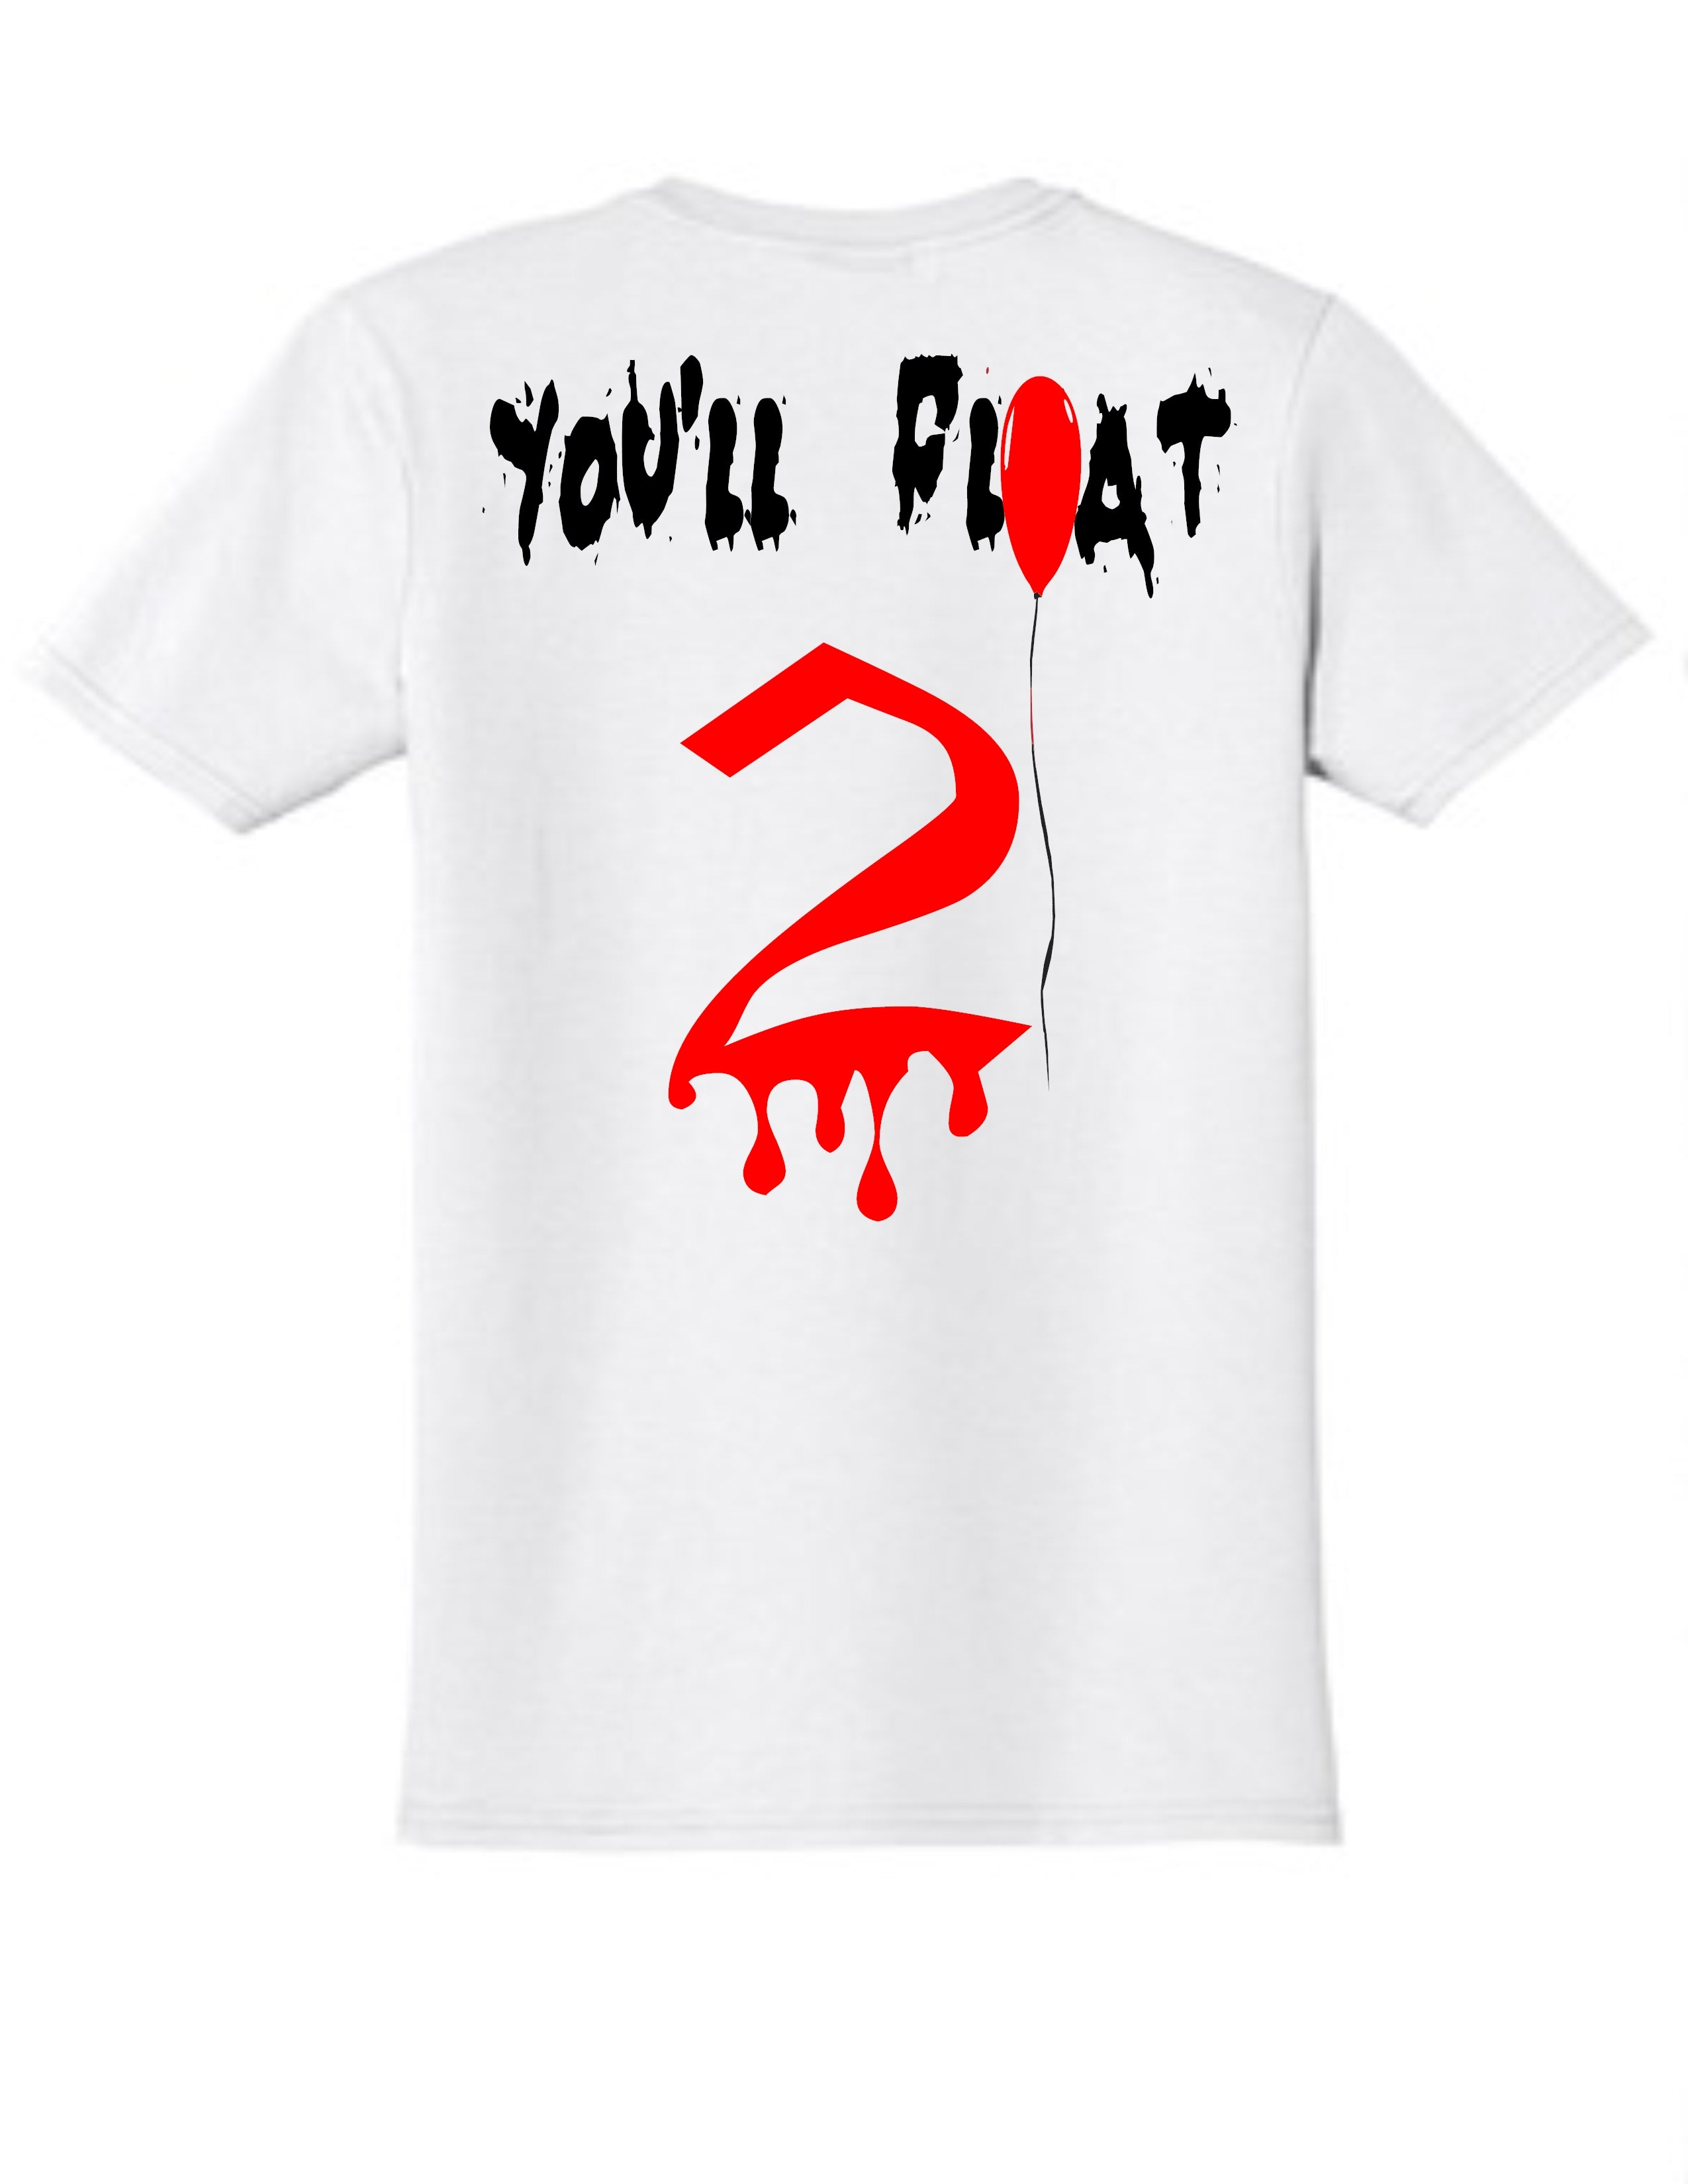 IT Float Tee - Voodoo Graphx